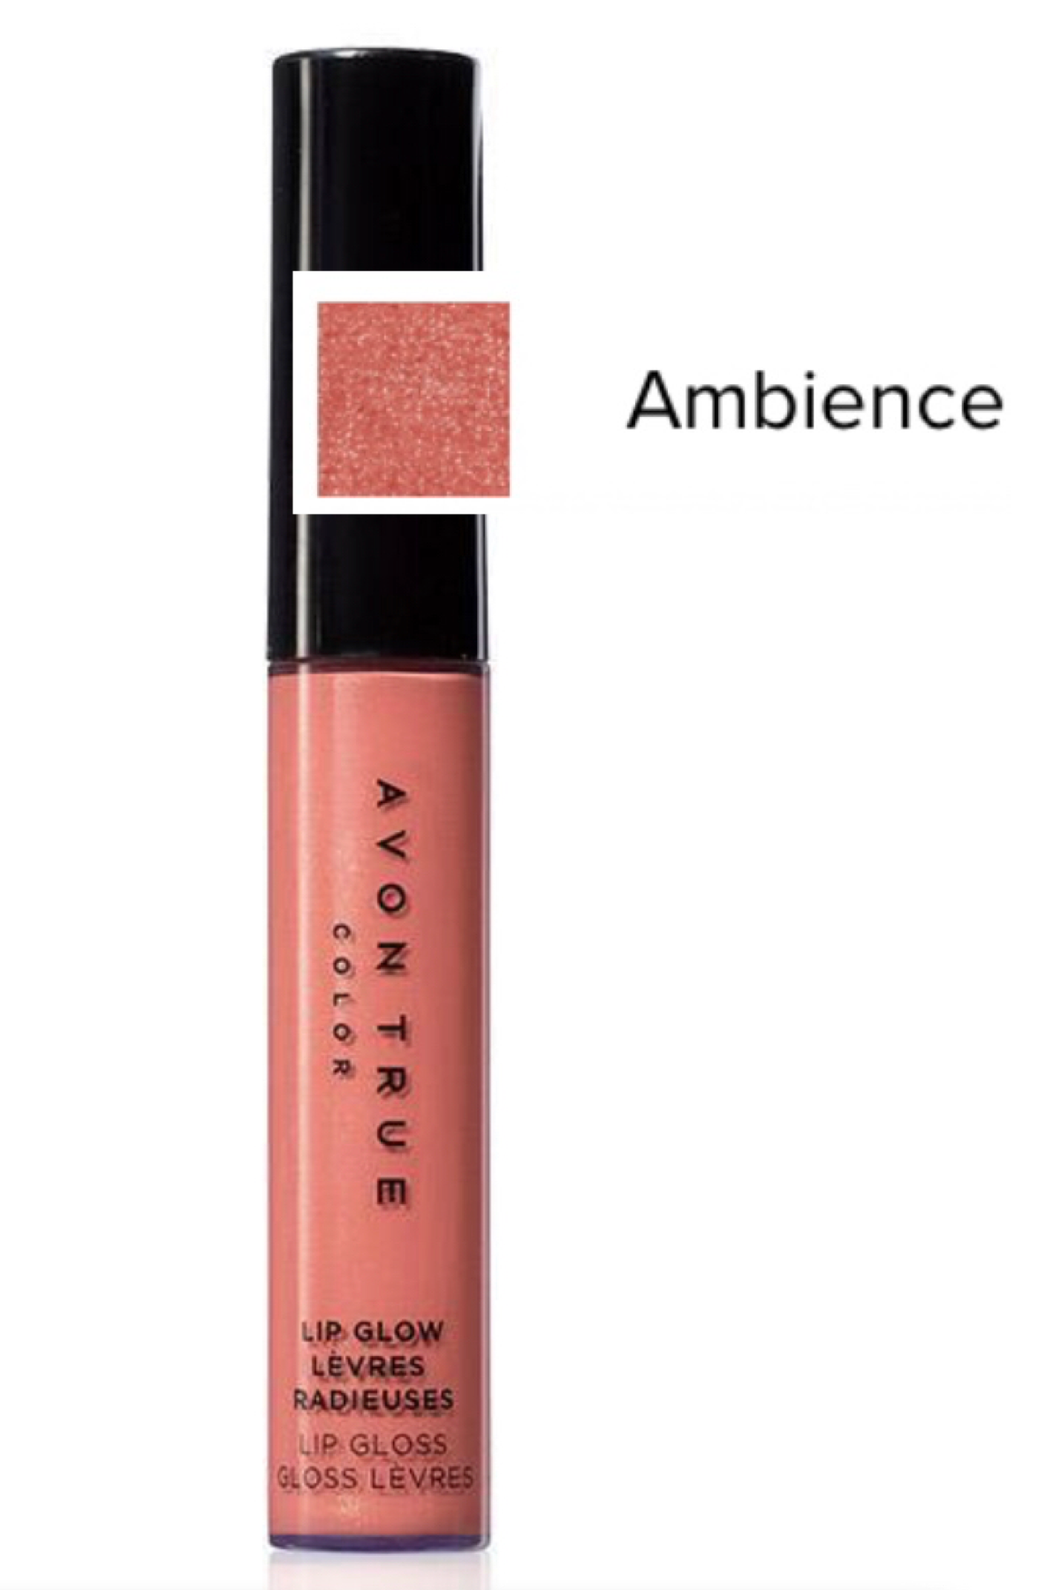 Ambience True Color Lip Glow Lip Gloss